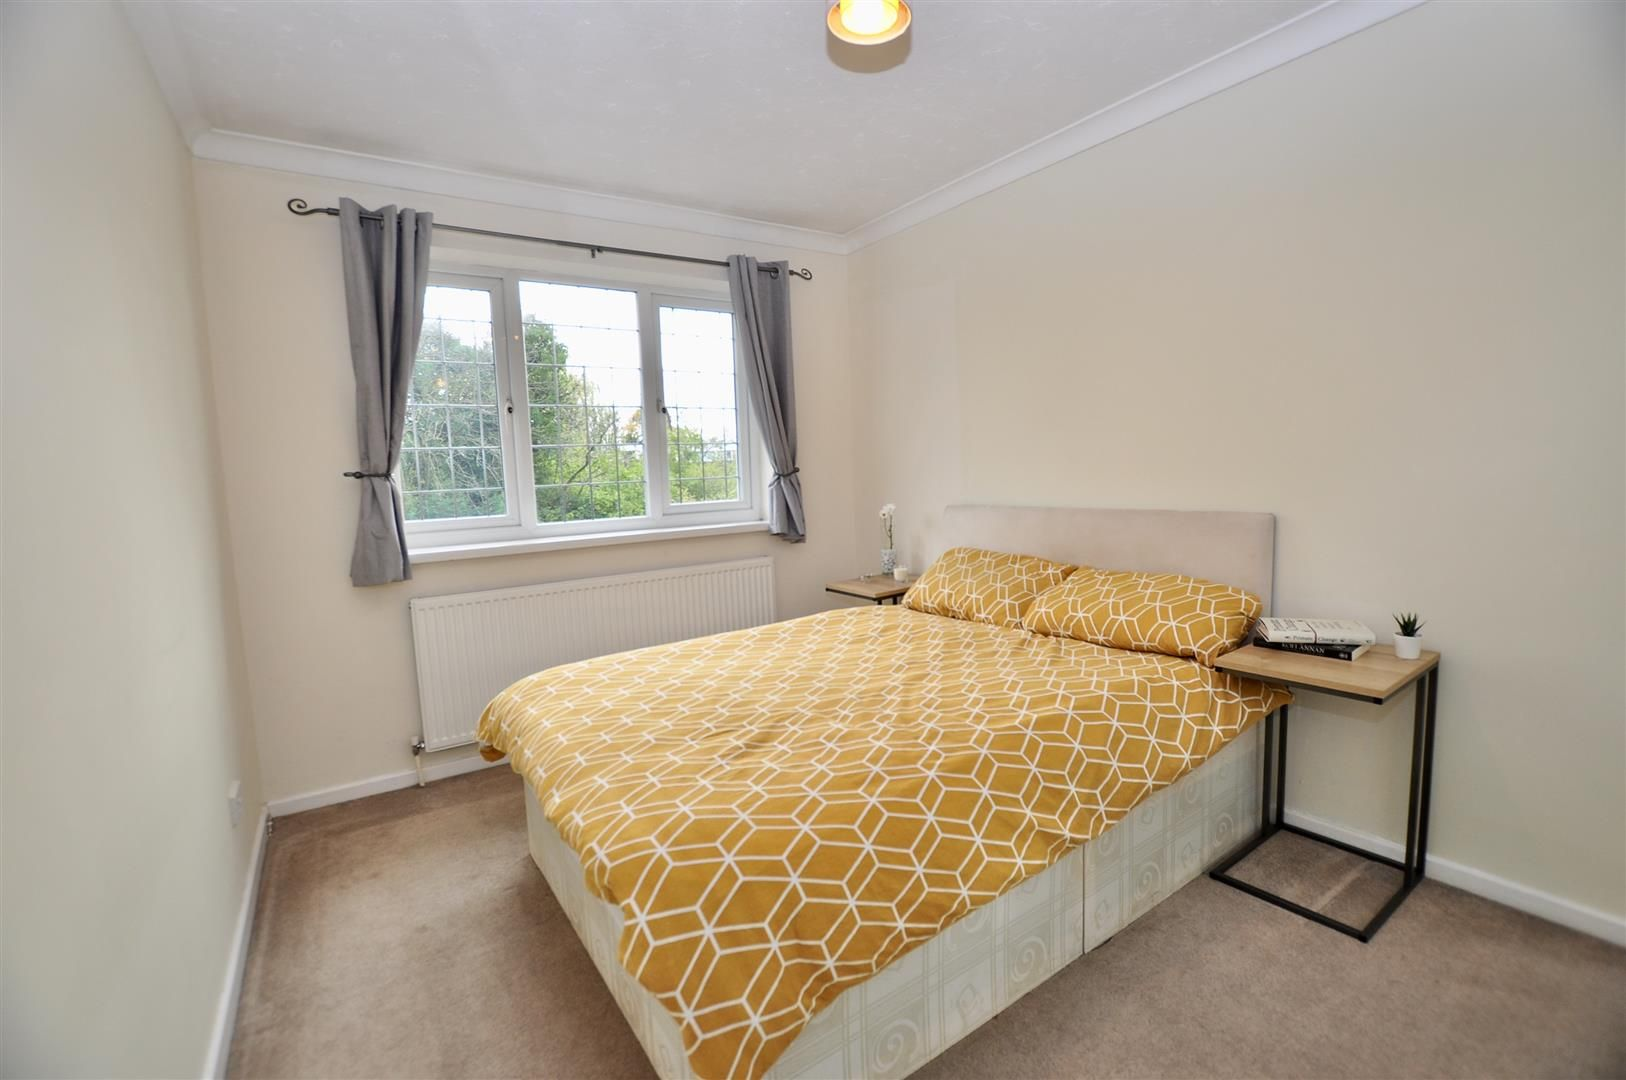 4 bed house for sale in Hagley  - Property Image 23